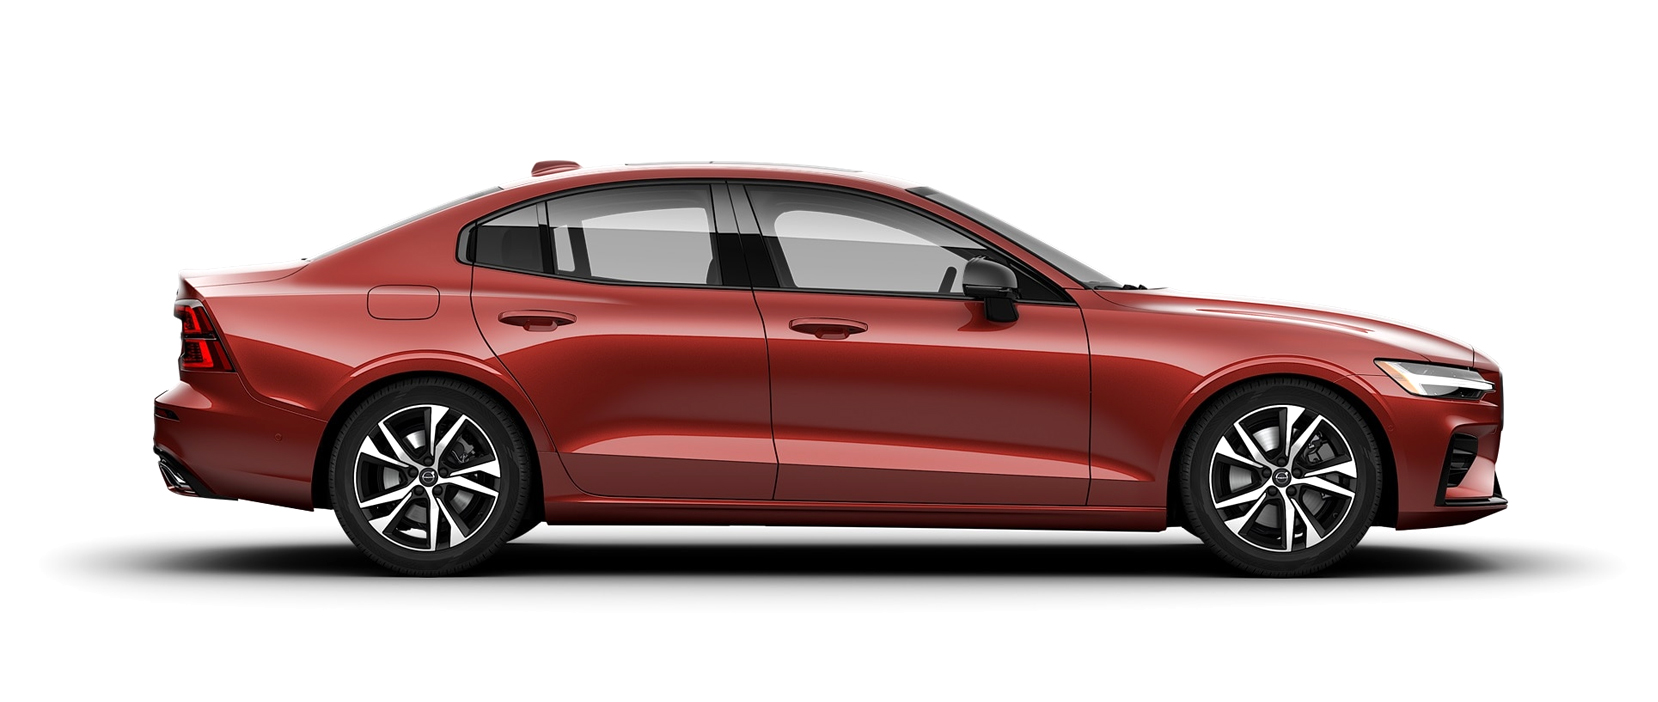 2020 Volvo S60 T6 R-Design shown